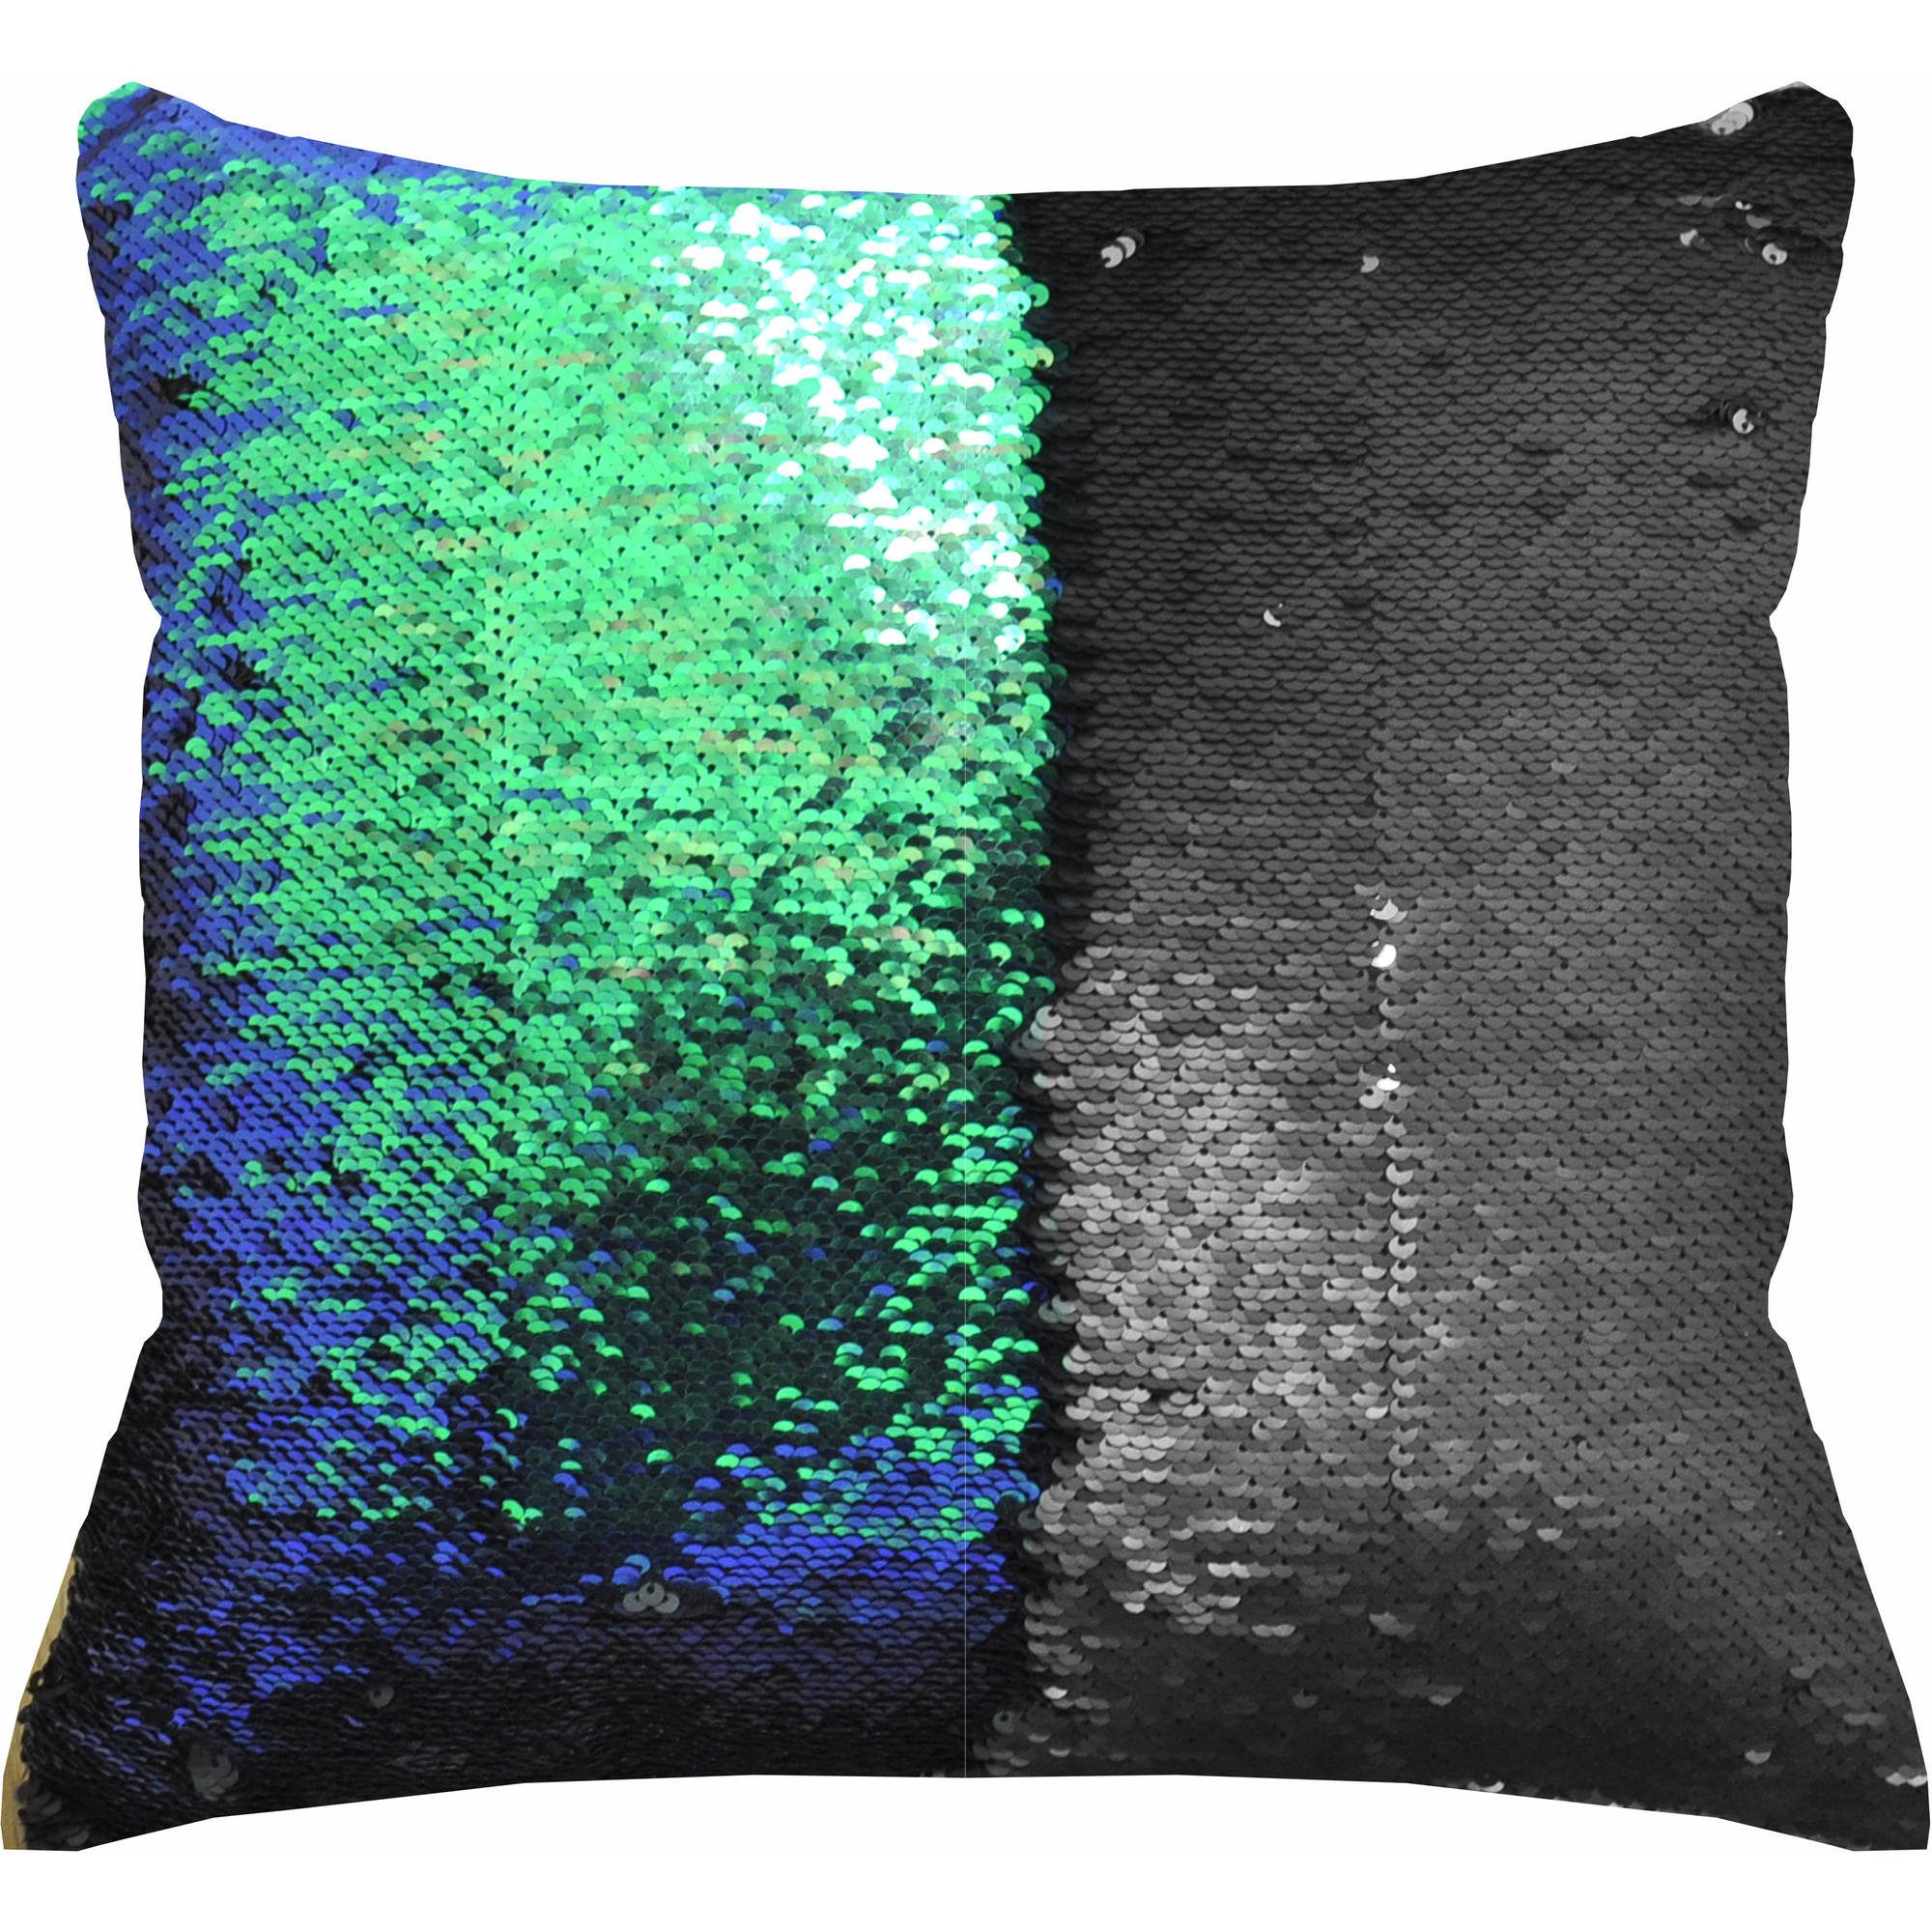 Bed chair pillow walmart - Mainstays Reversible 17 X 17 Sequin Mermaid Decorative Pillow Walmart Com